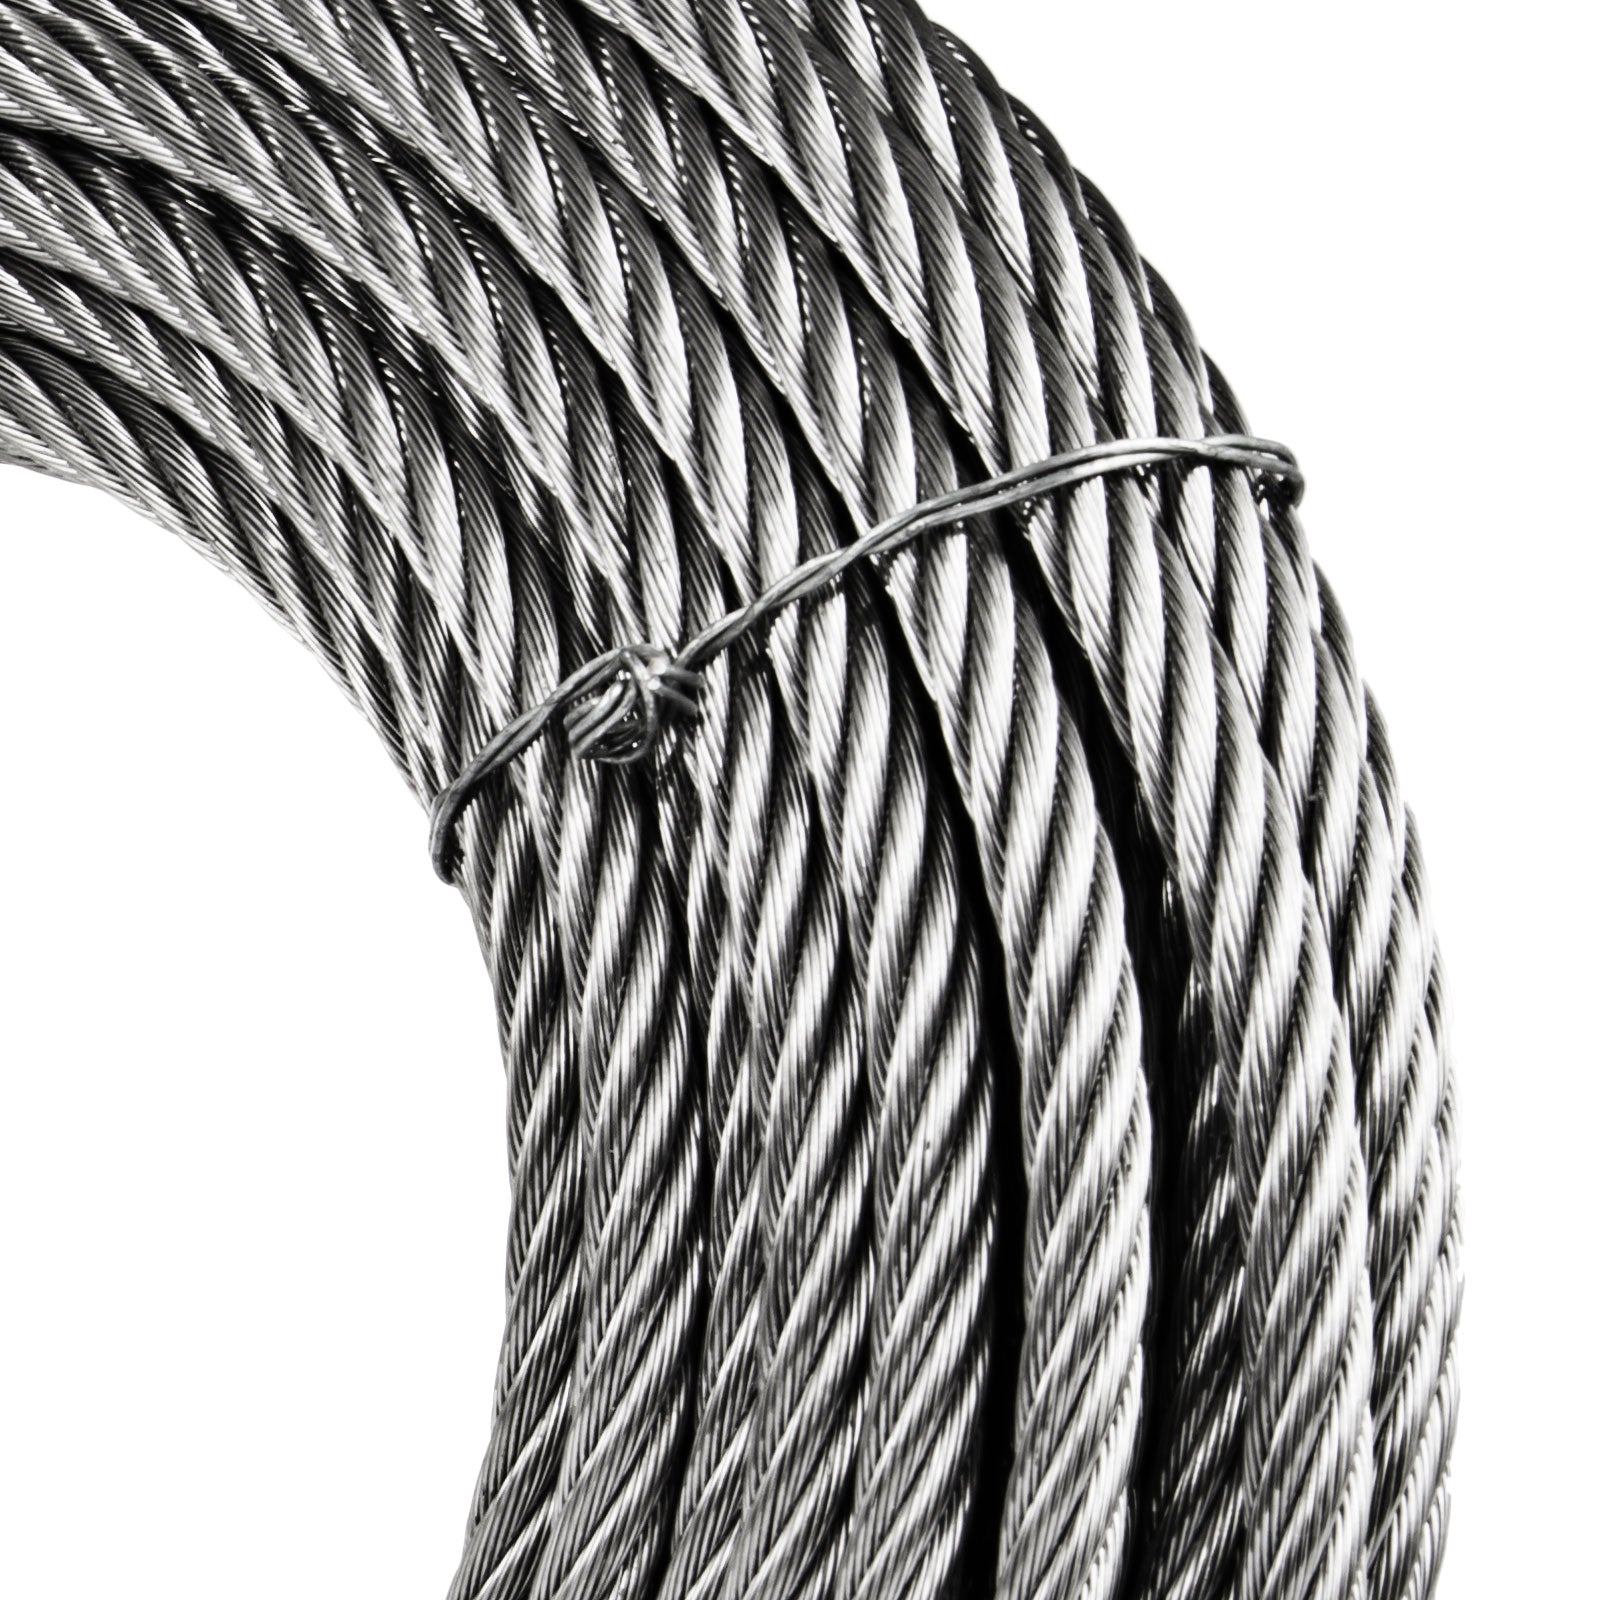 5/16 7x19 Stainless Steel Cable Wire Rope 50ft Durable Outdoor Chemical Pro